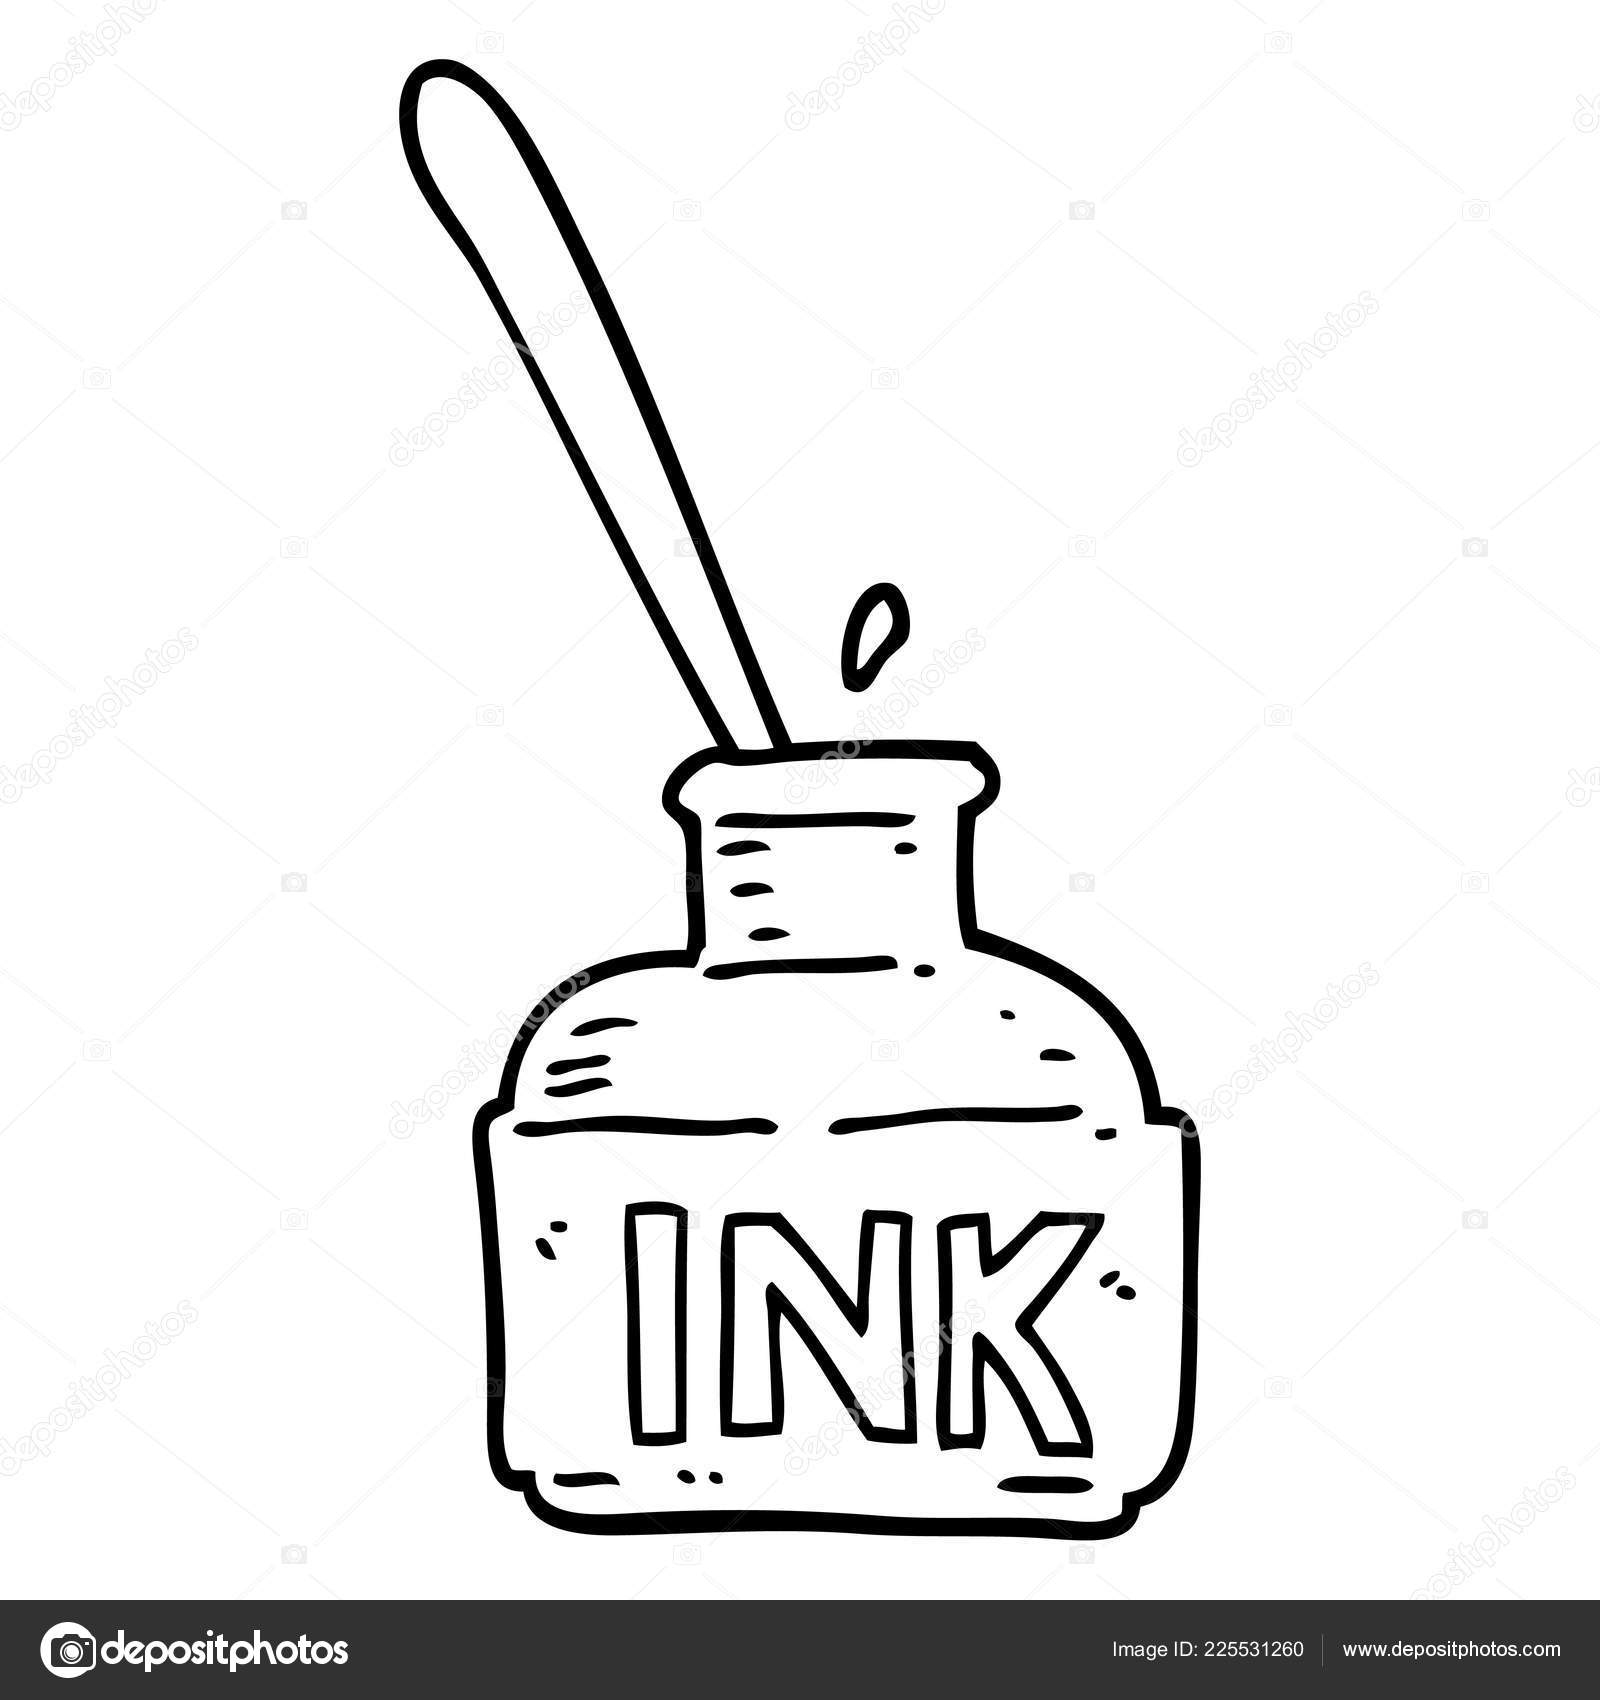 How To Draw Cartoon Ink Bottle Line Drawing Cartoon Ink Bottle Stock Vector C Lineartestpilot 225531260